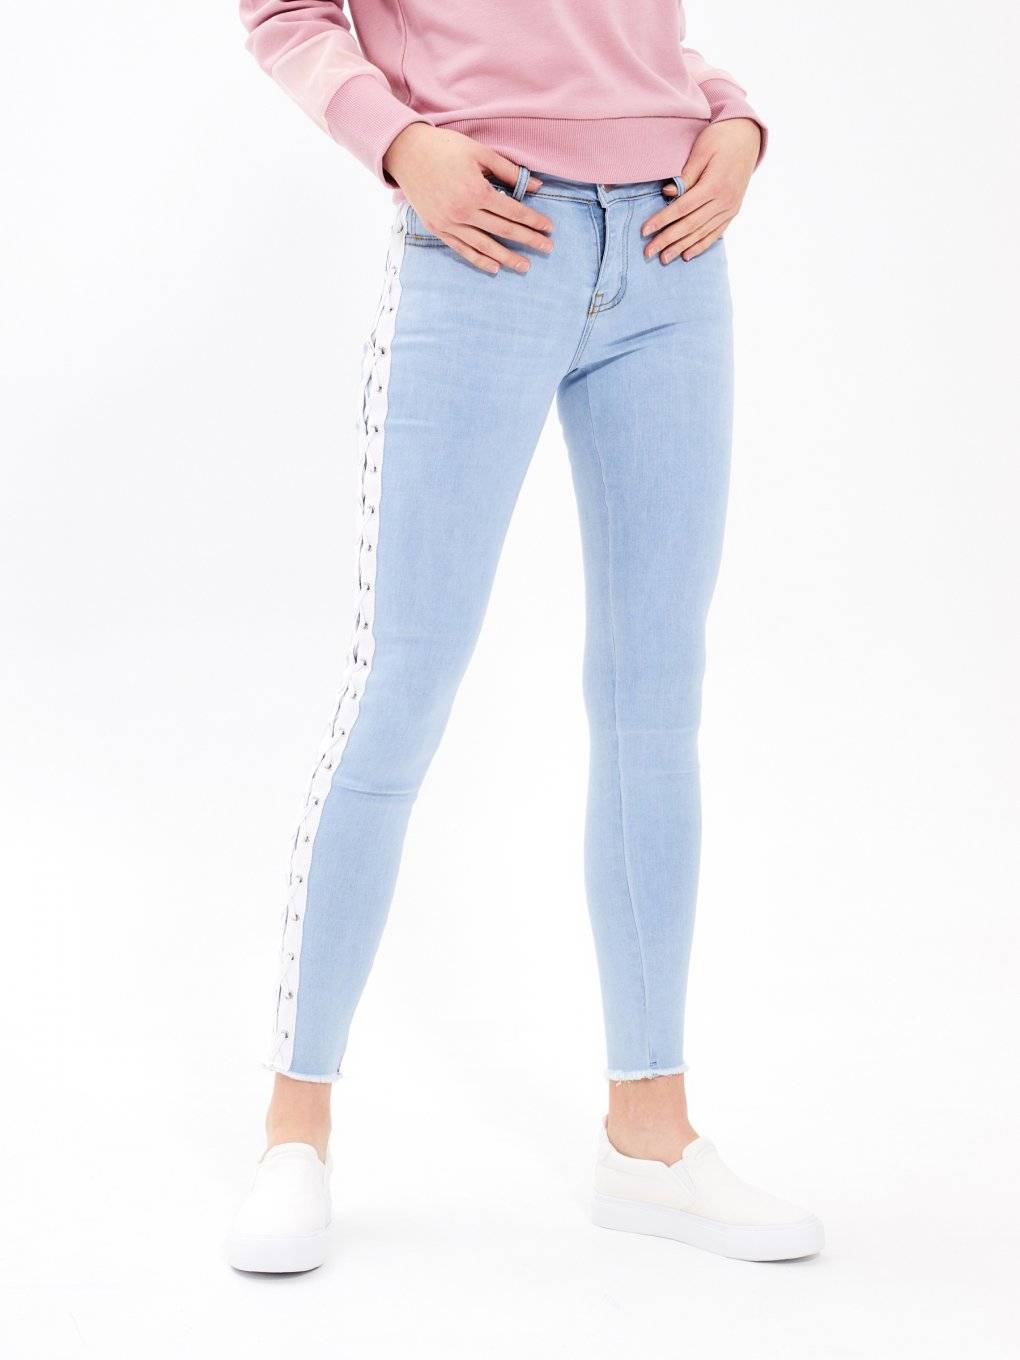 Taped skinny jeans